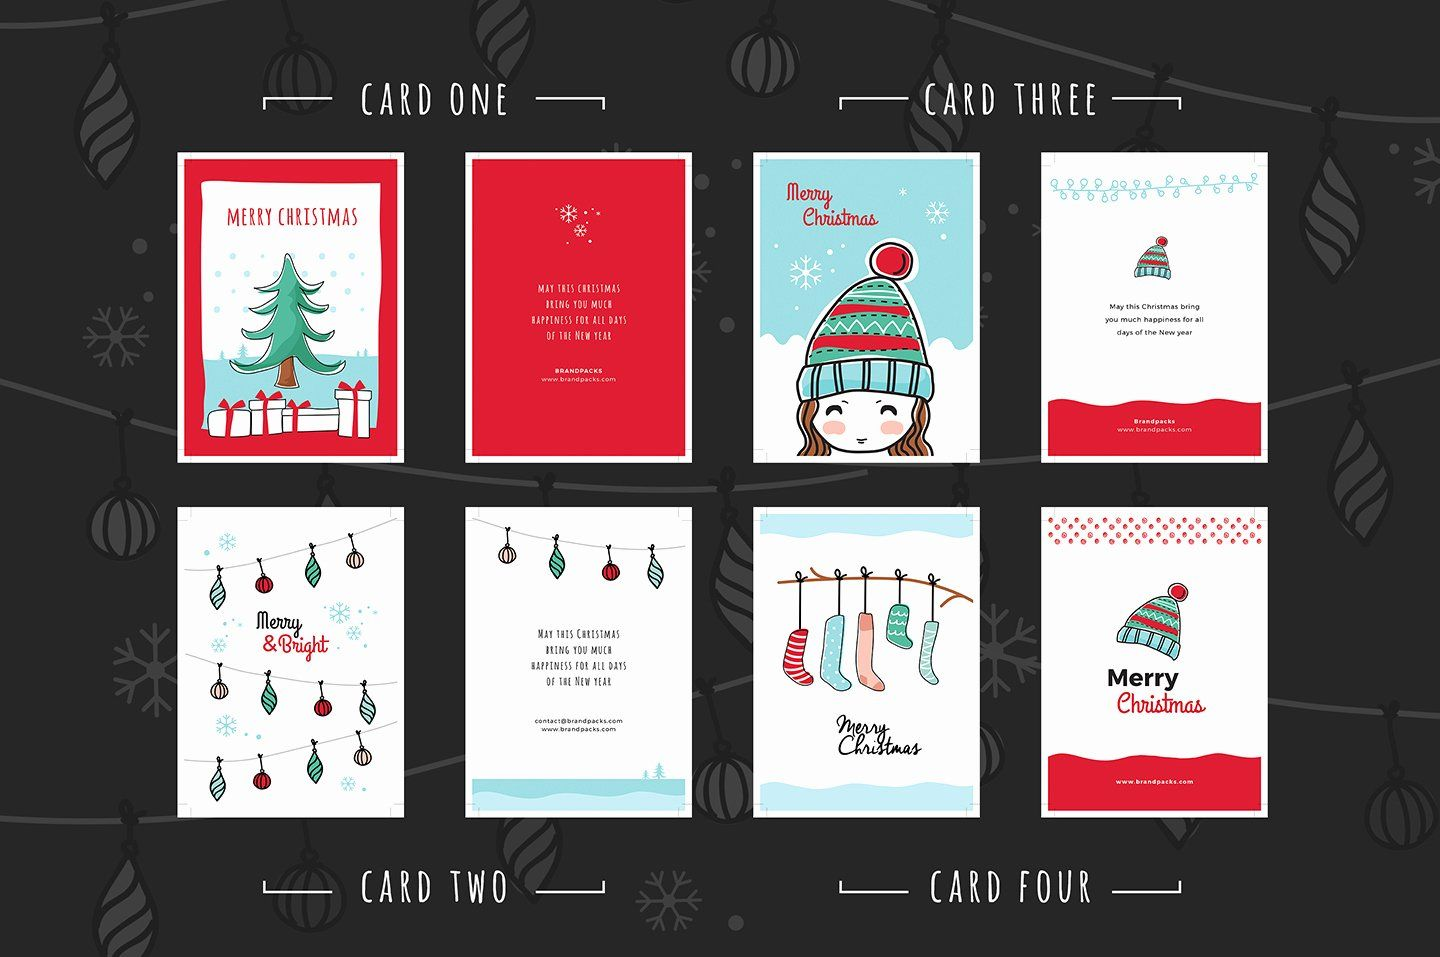 Christmas Card Template Photoshop Lovely Free Christmas Card Templates For Sh In 2020 Holiday Card Template Christmas Card Templates Free Christmas Photo Card Template